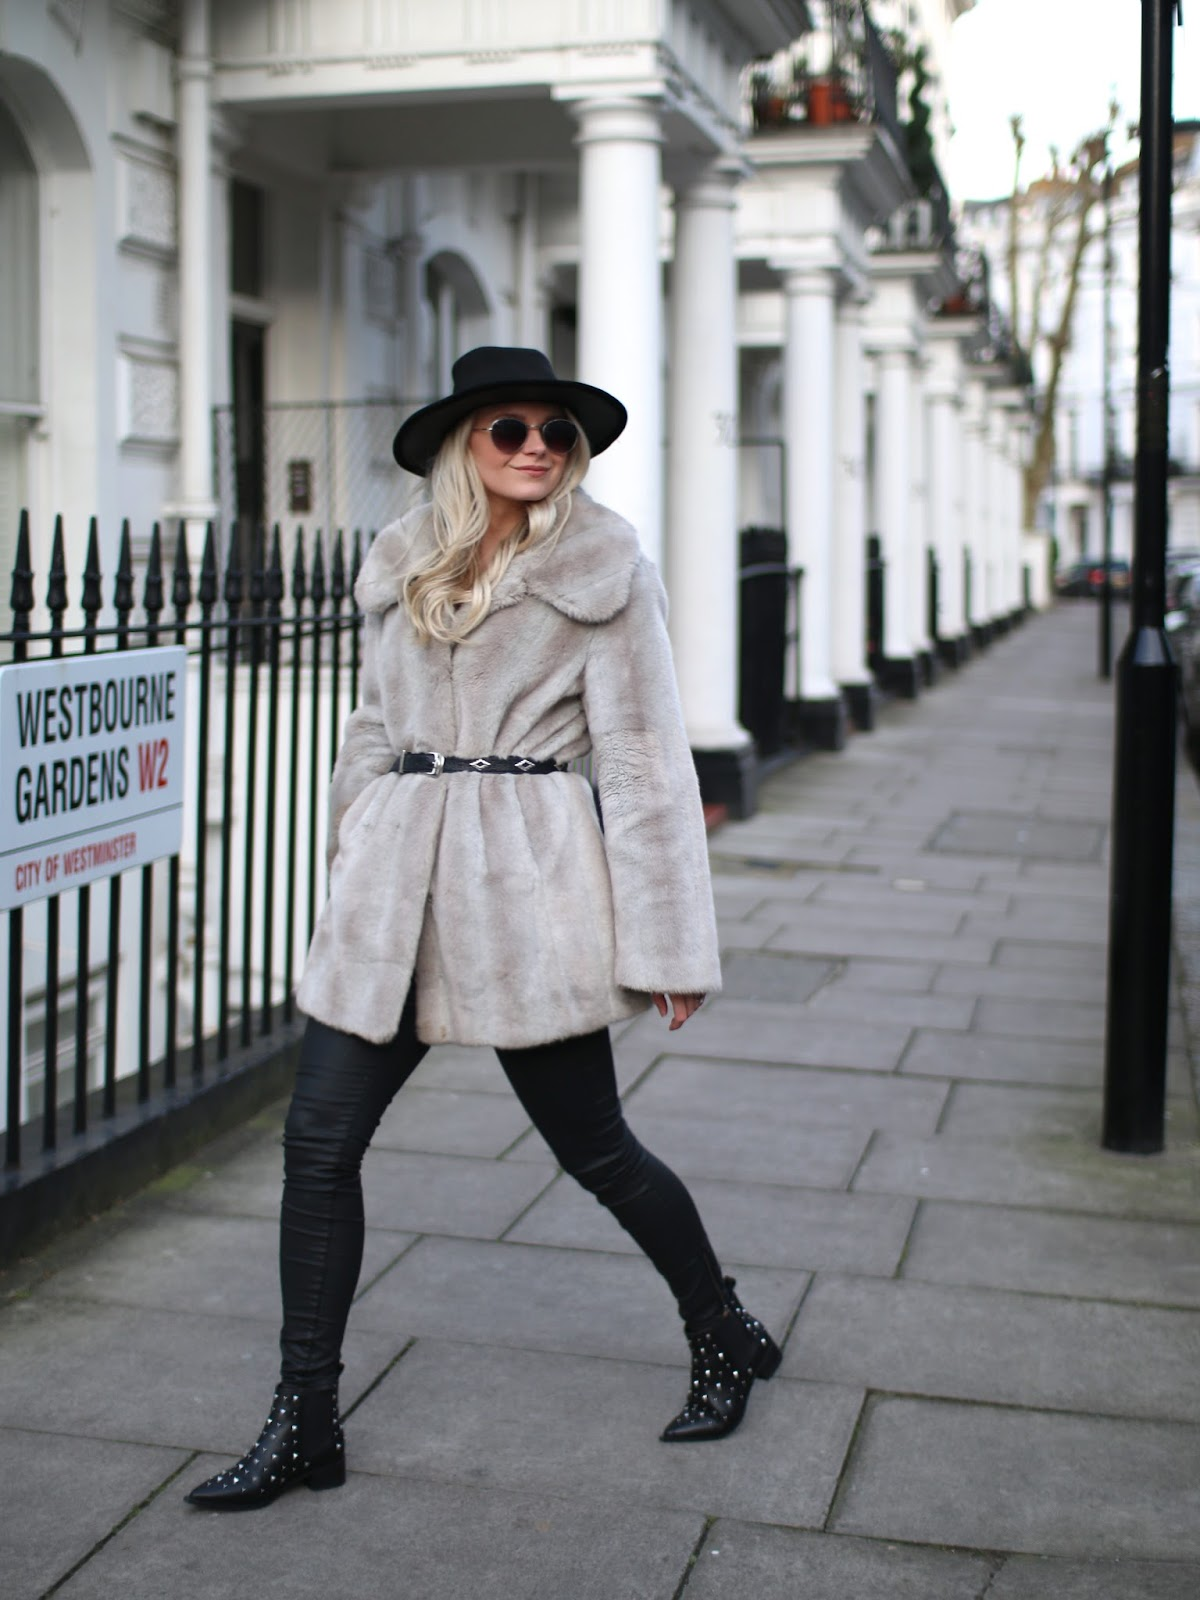 blogger wearing bohemian inspired outfit in london